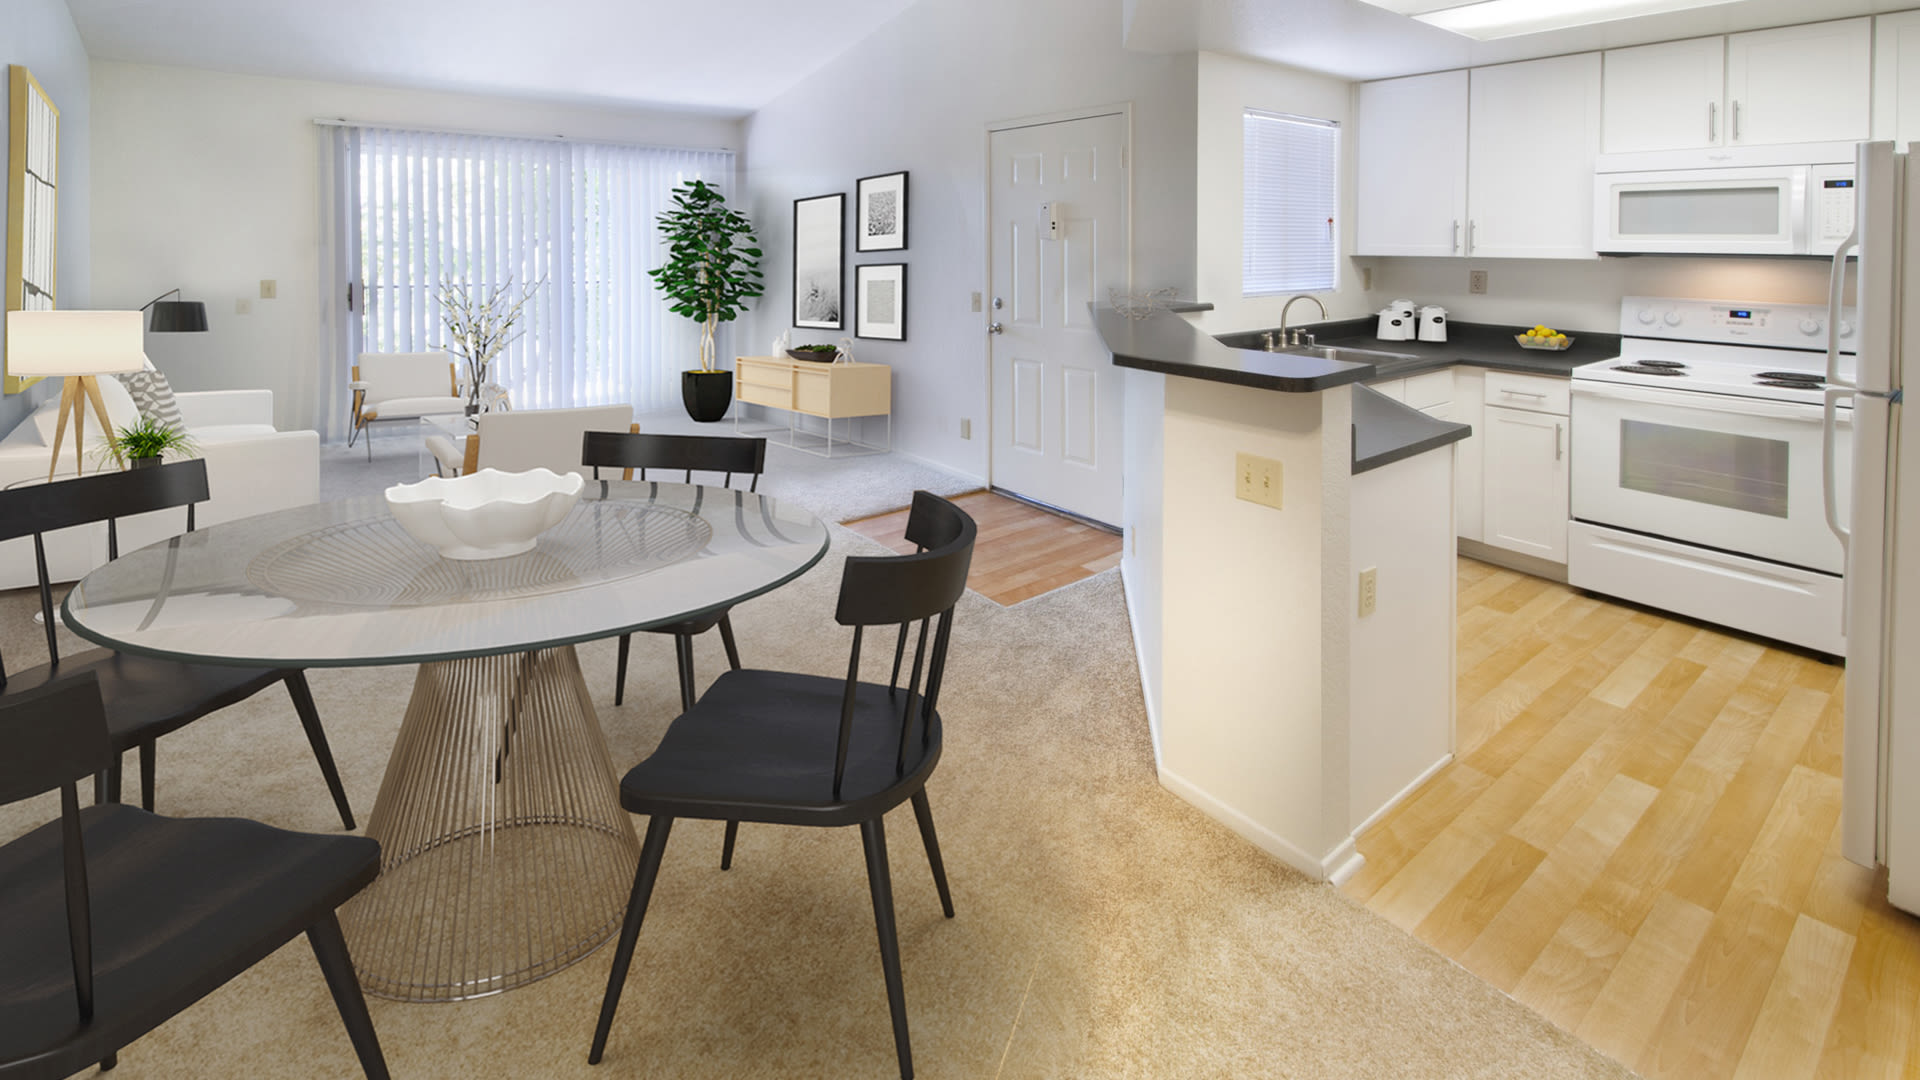 Siena Terrace Apartments - Kitchen and Carpeted Living Room with Balcony